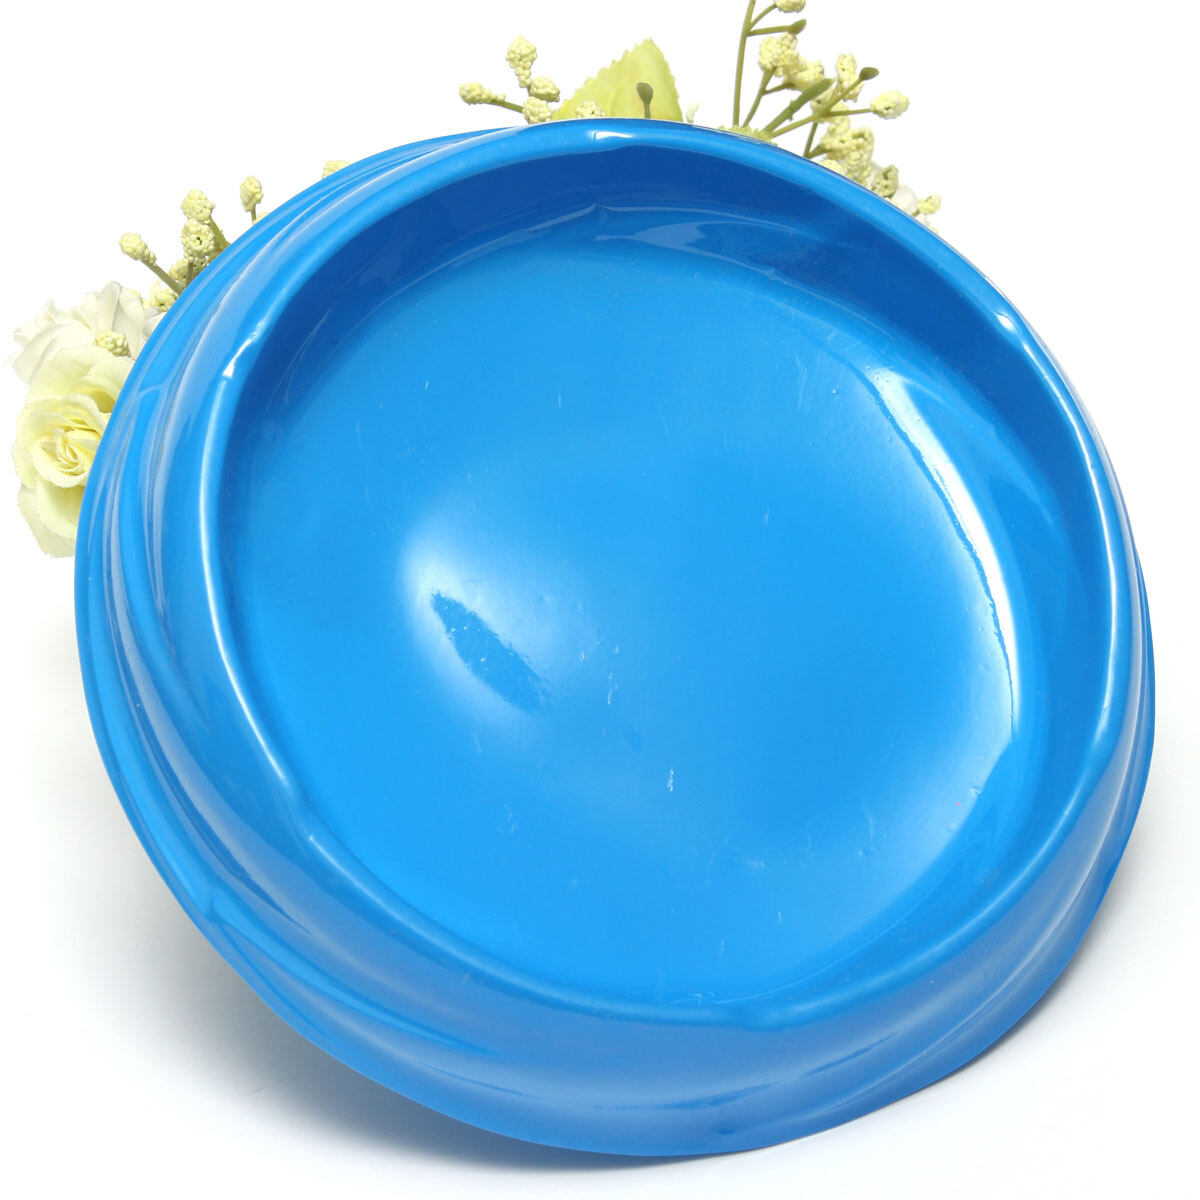 Blue Beyblade Super Vortex Attack Type Stadium Plastic Battle Top Plate Combat - intl